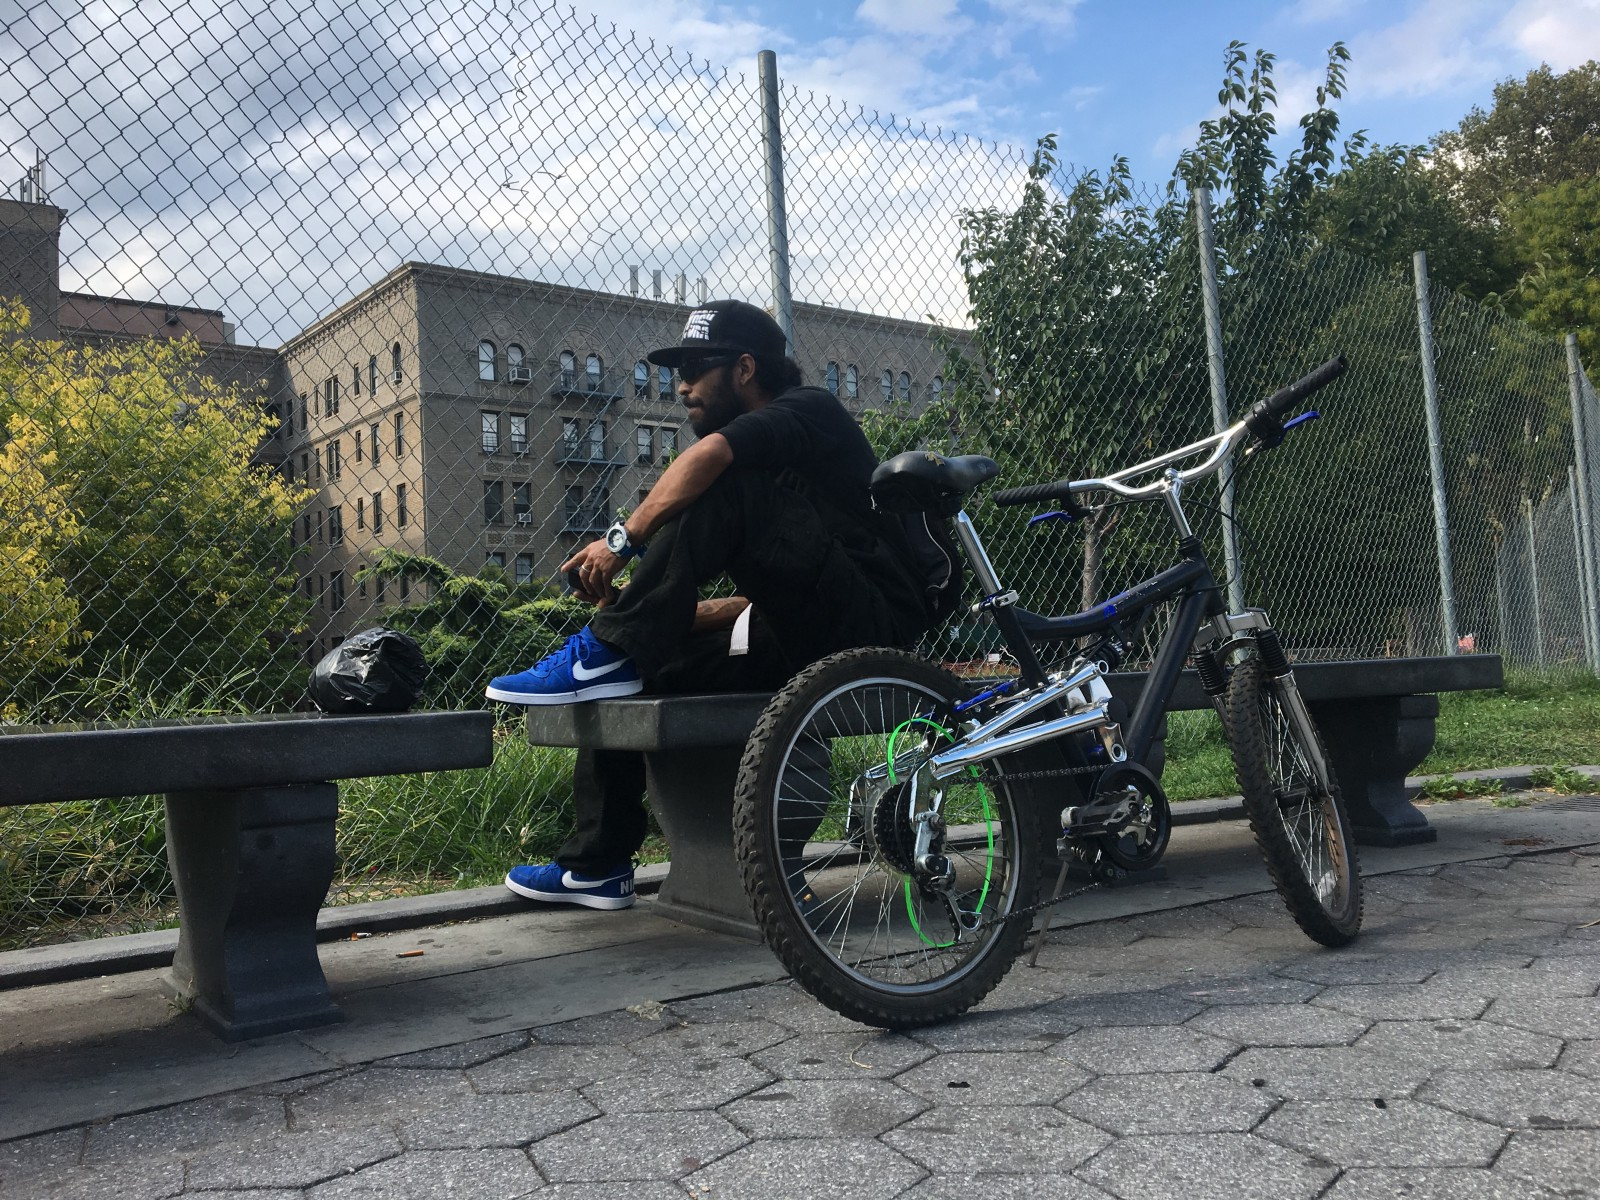 Staten Island and The Bronx are still waiting for Citi Bike